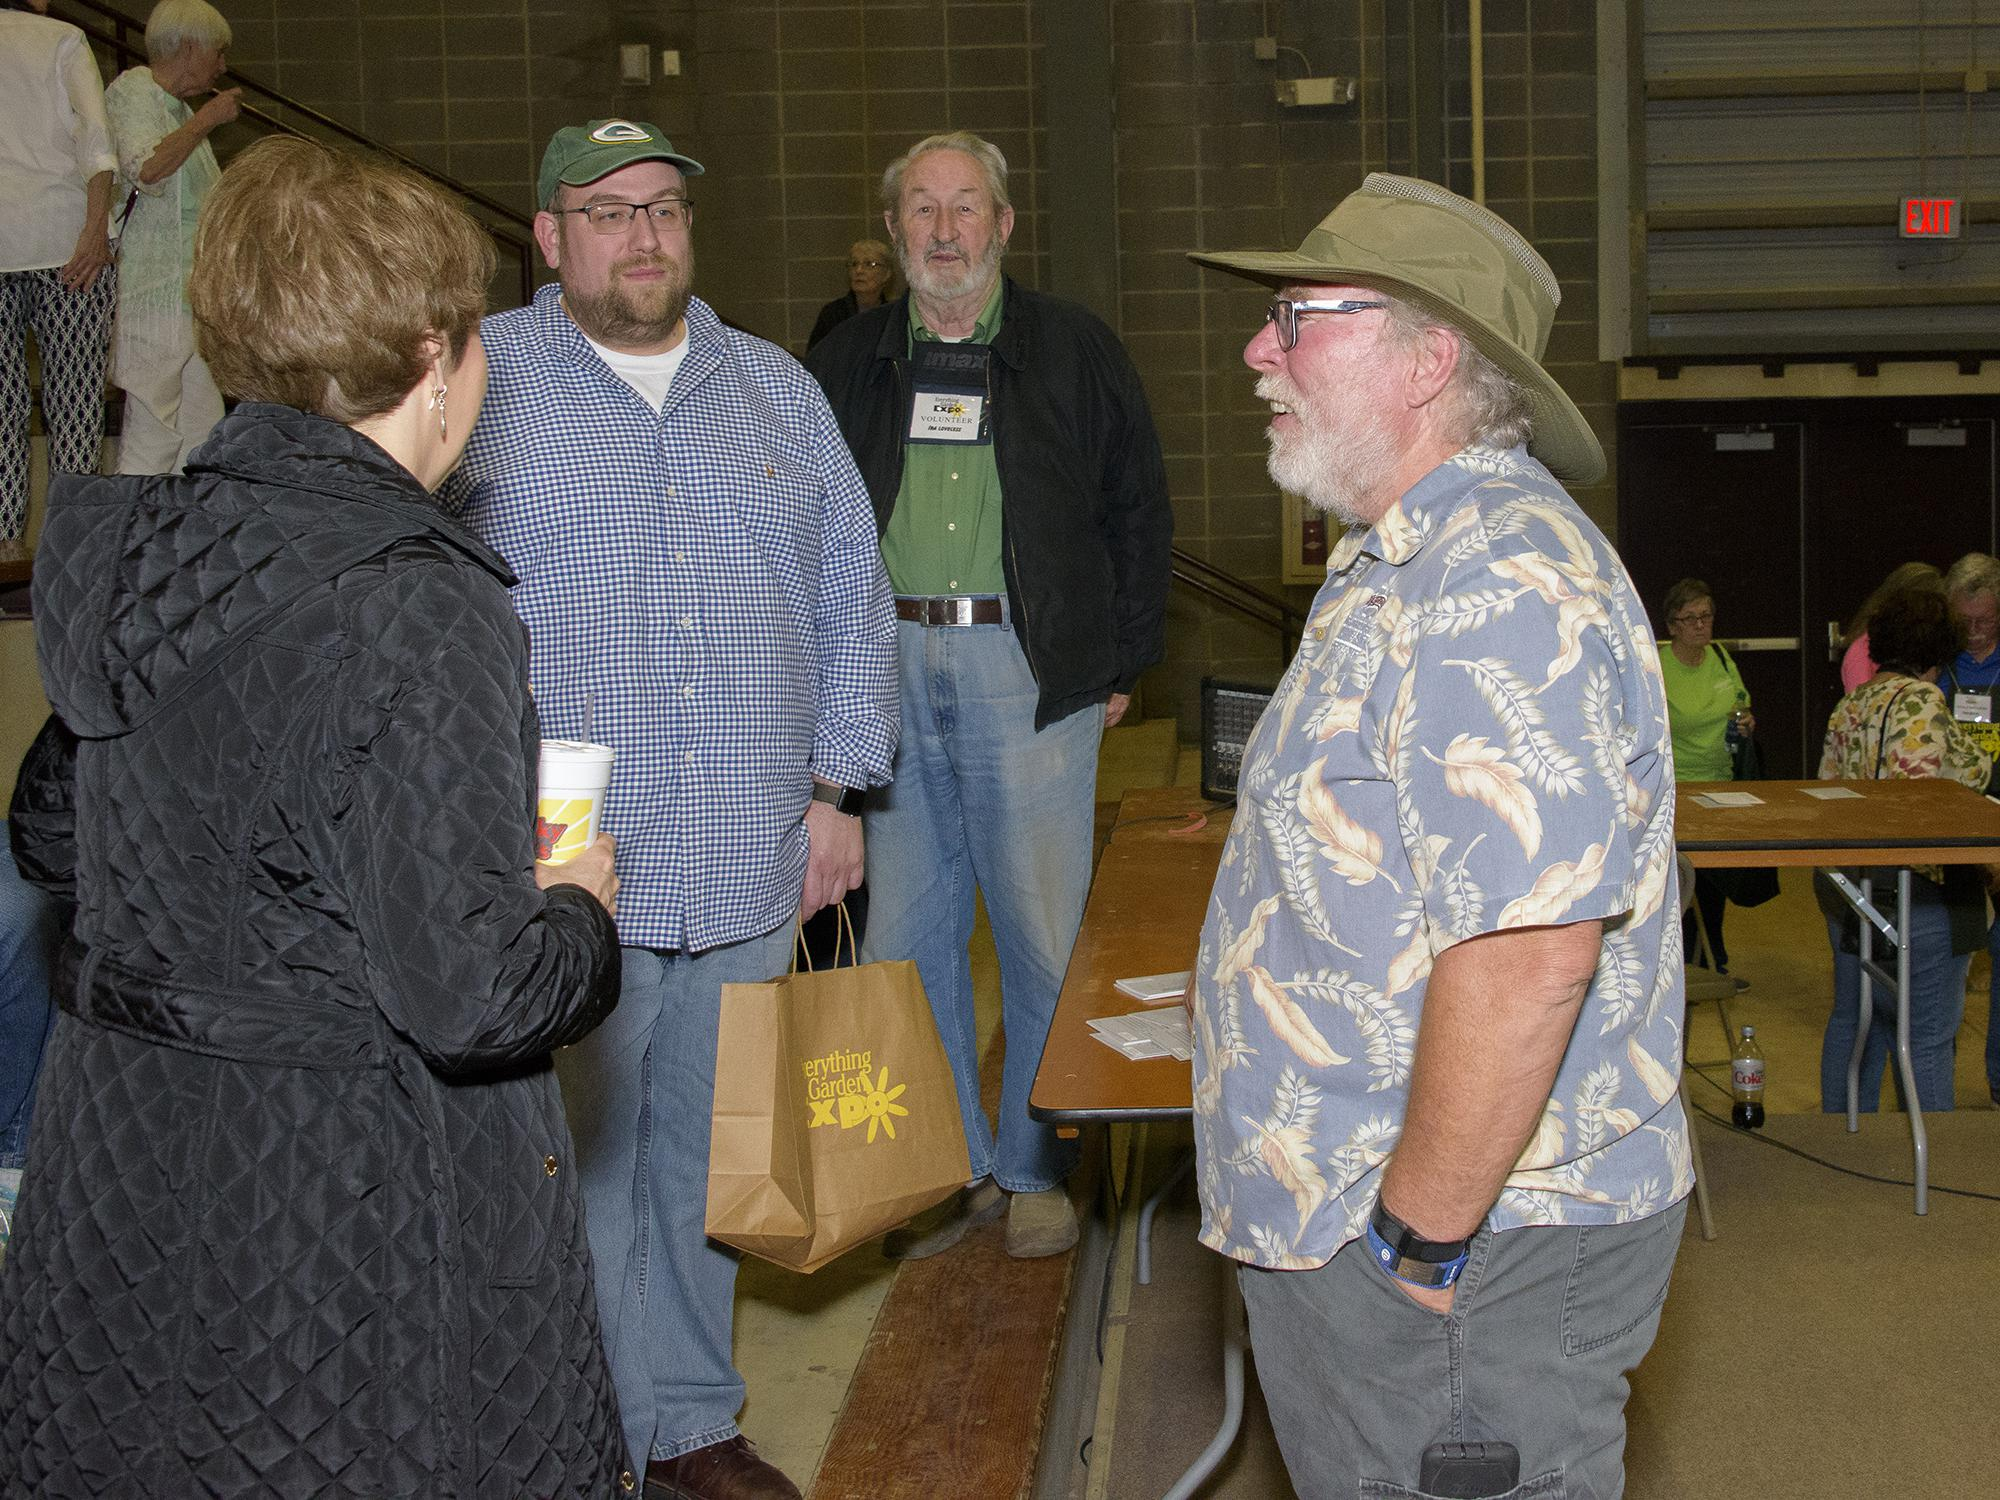 A man in a gardening hat stands and talks to three adults, with several others milling about in the background.